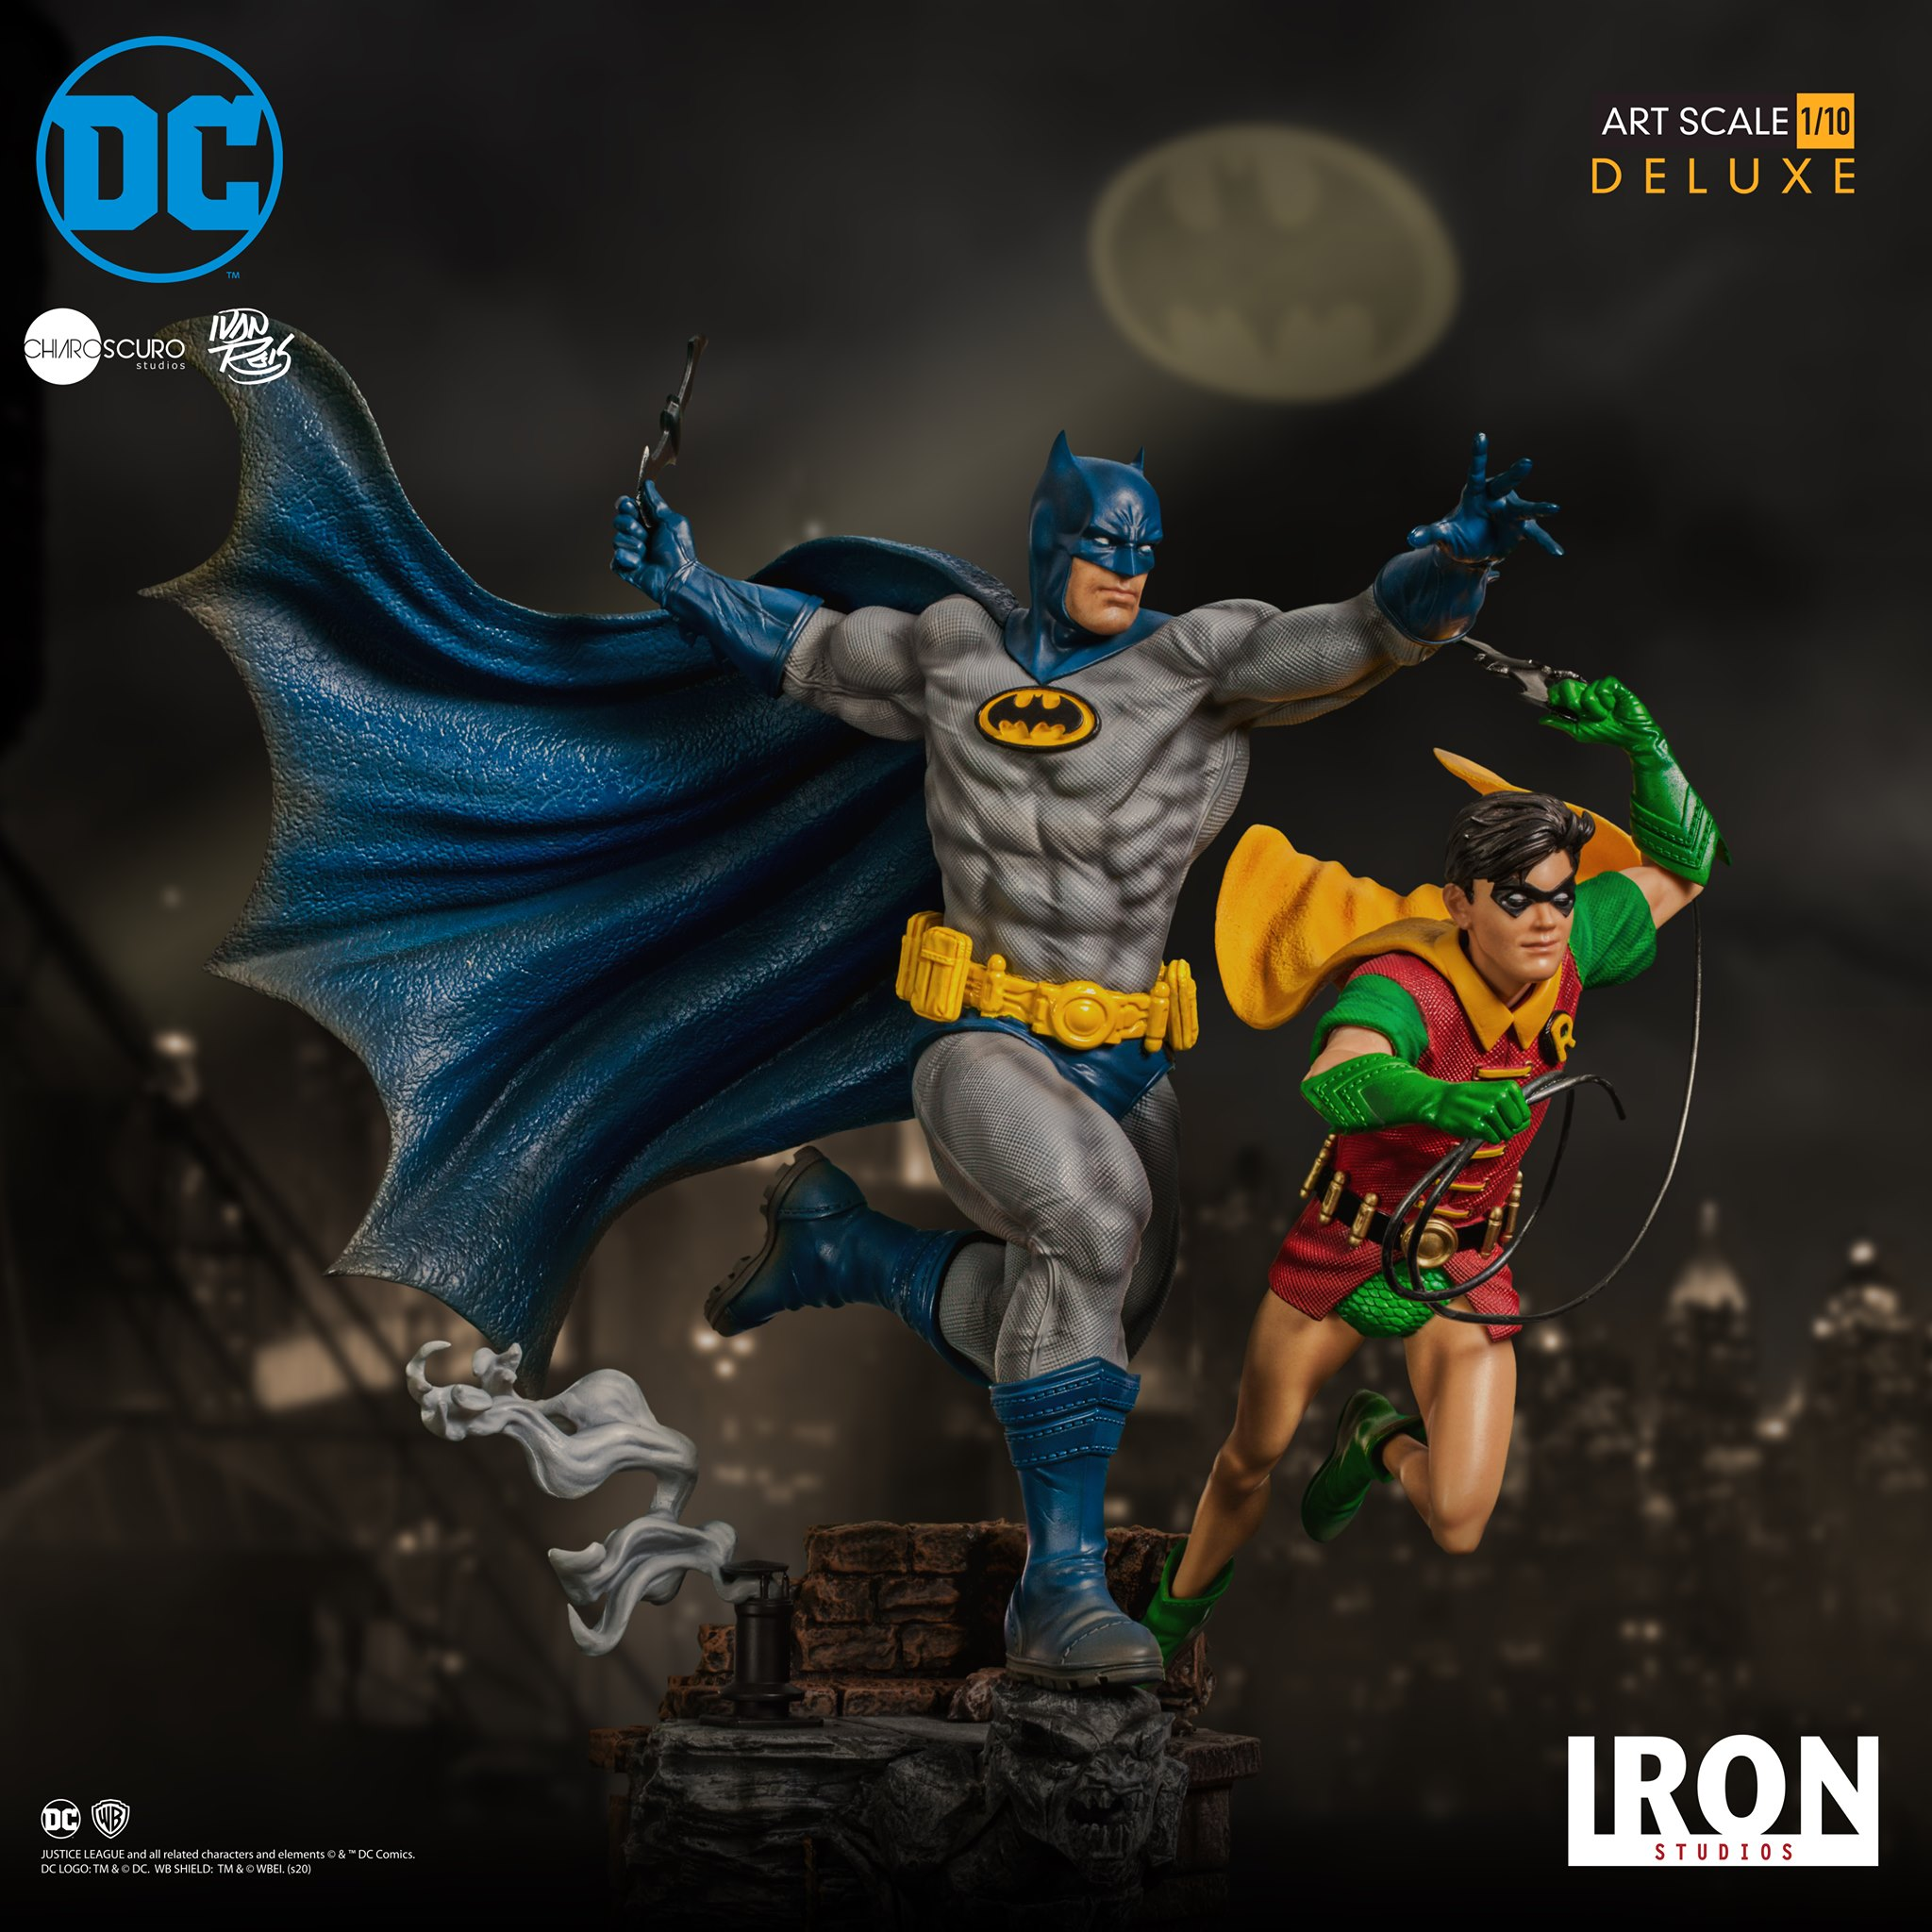 Sideshow Collectibles – Iron Studios Batman & Robin Deluxe Art Scale 1/10 Statue Pre-Orders